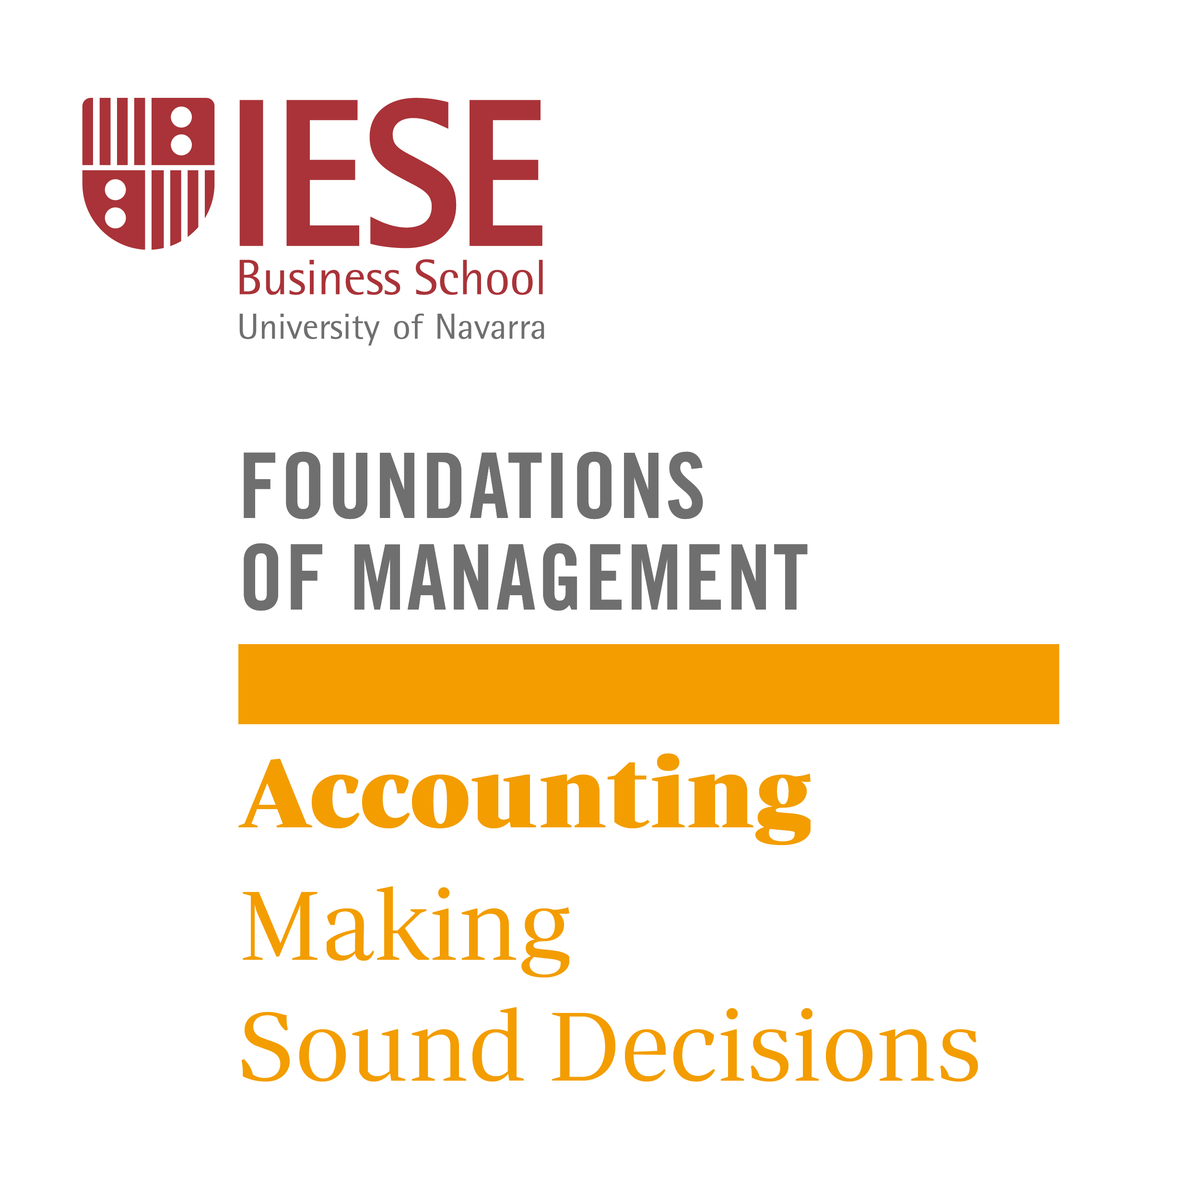 Accounting: Making Sound Decisions